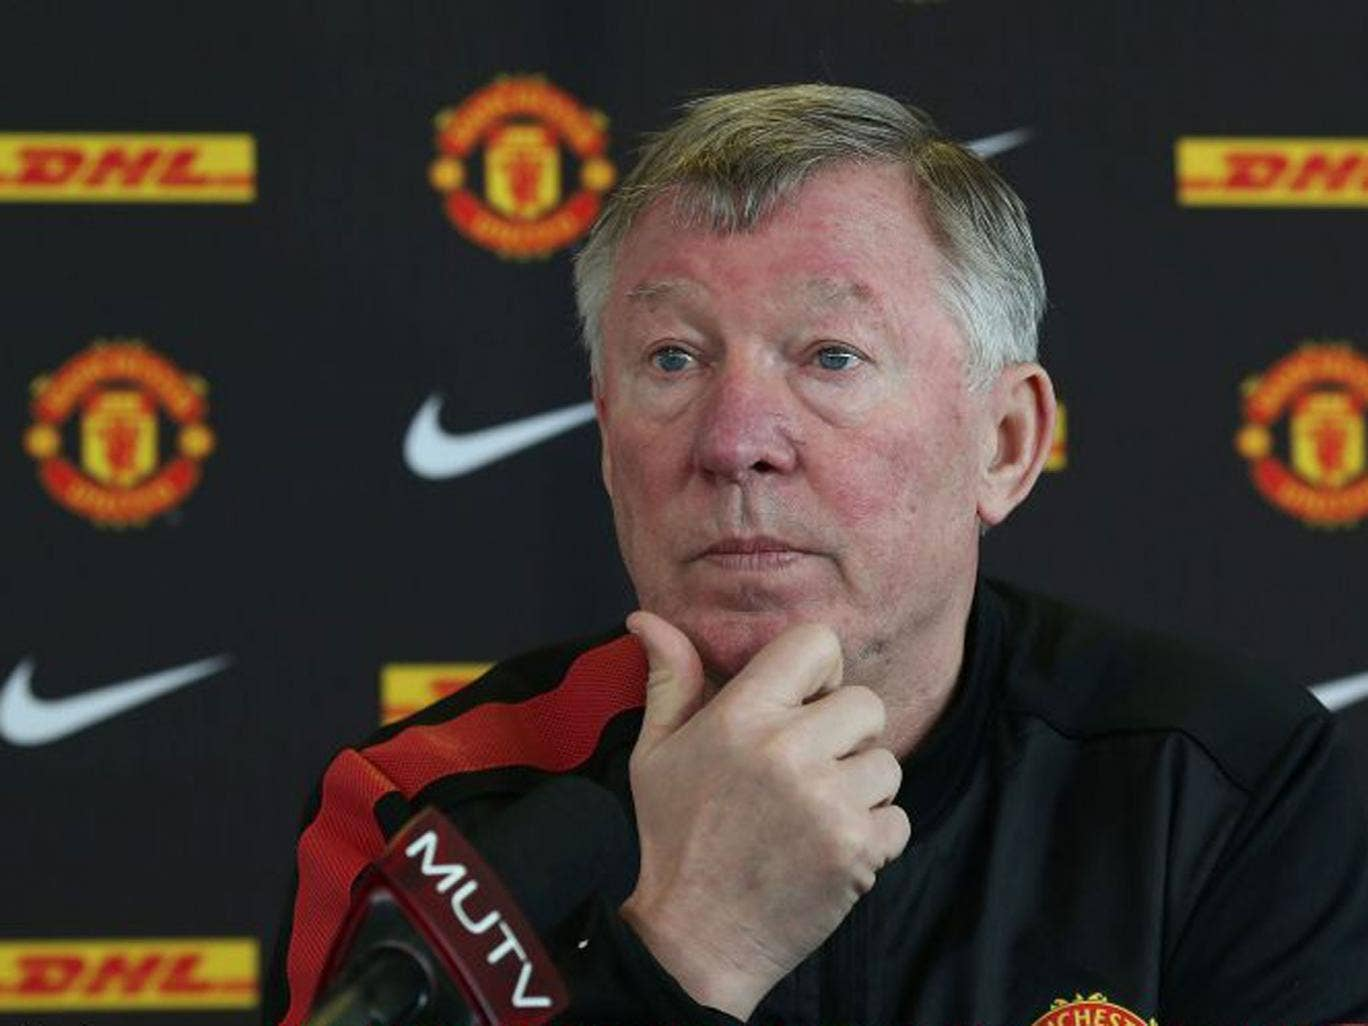 'We'd like to see agents go away,' says Sir Alex Ferguson